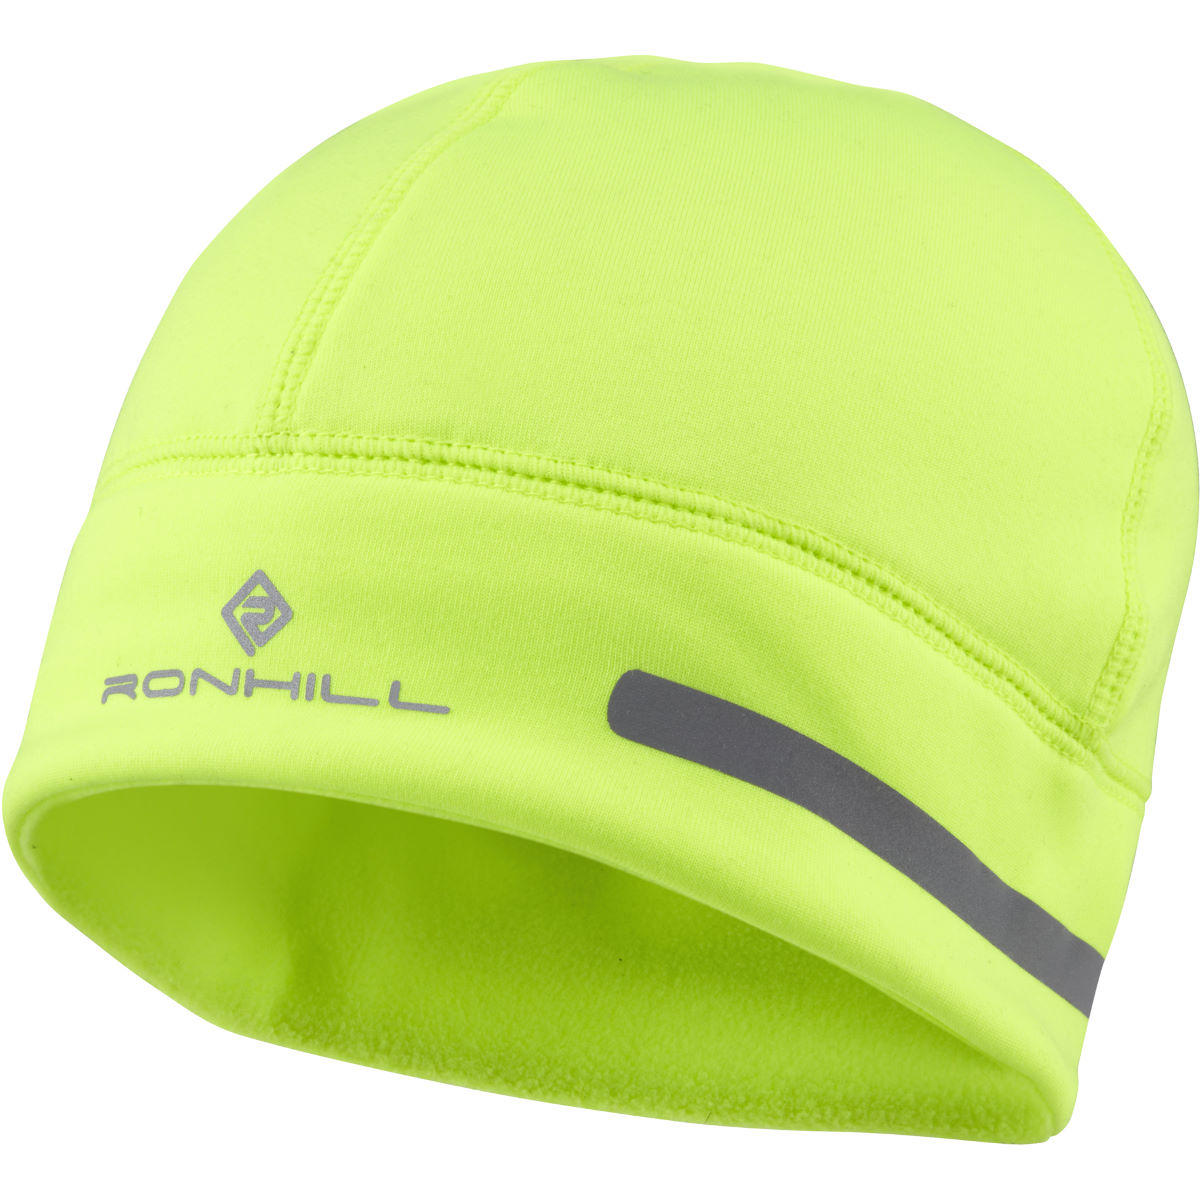 Ronhill Flash Beanie Hat